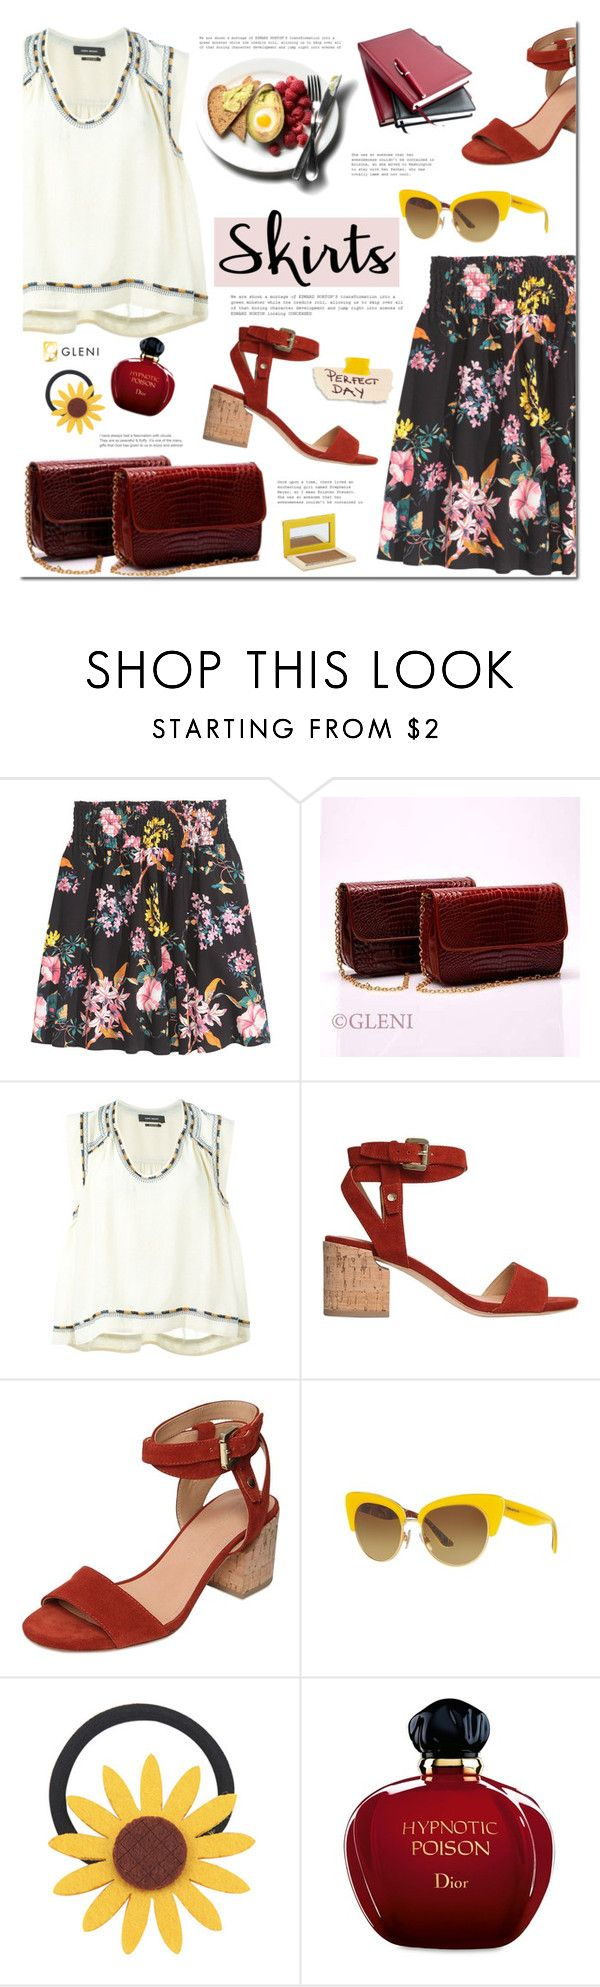 Skirts Under $50 by mada-malureanu on Polyvore featuring moda, Isabel Marant, H&M, Sigerson Morrison, Dolce&Gabbana, Chicnova Fashion, TheBalm, Christian Dior, under50 and gleni